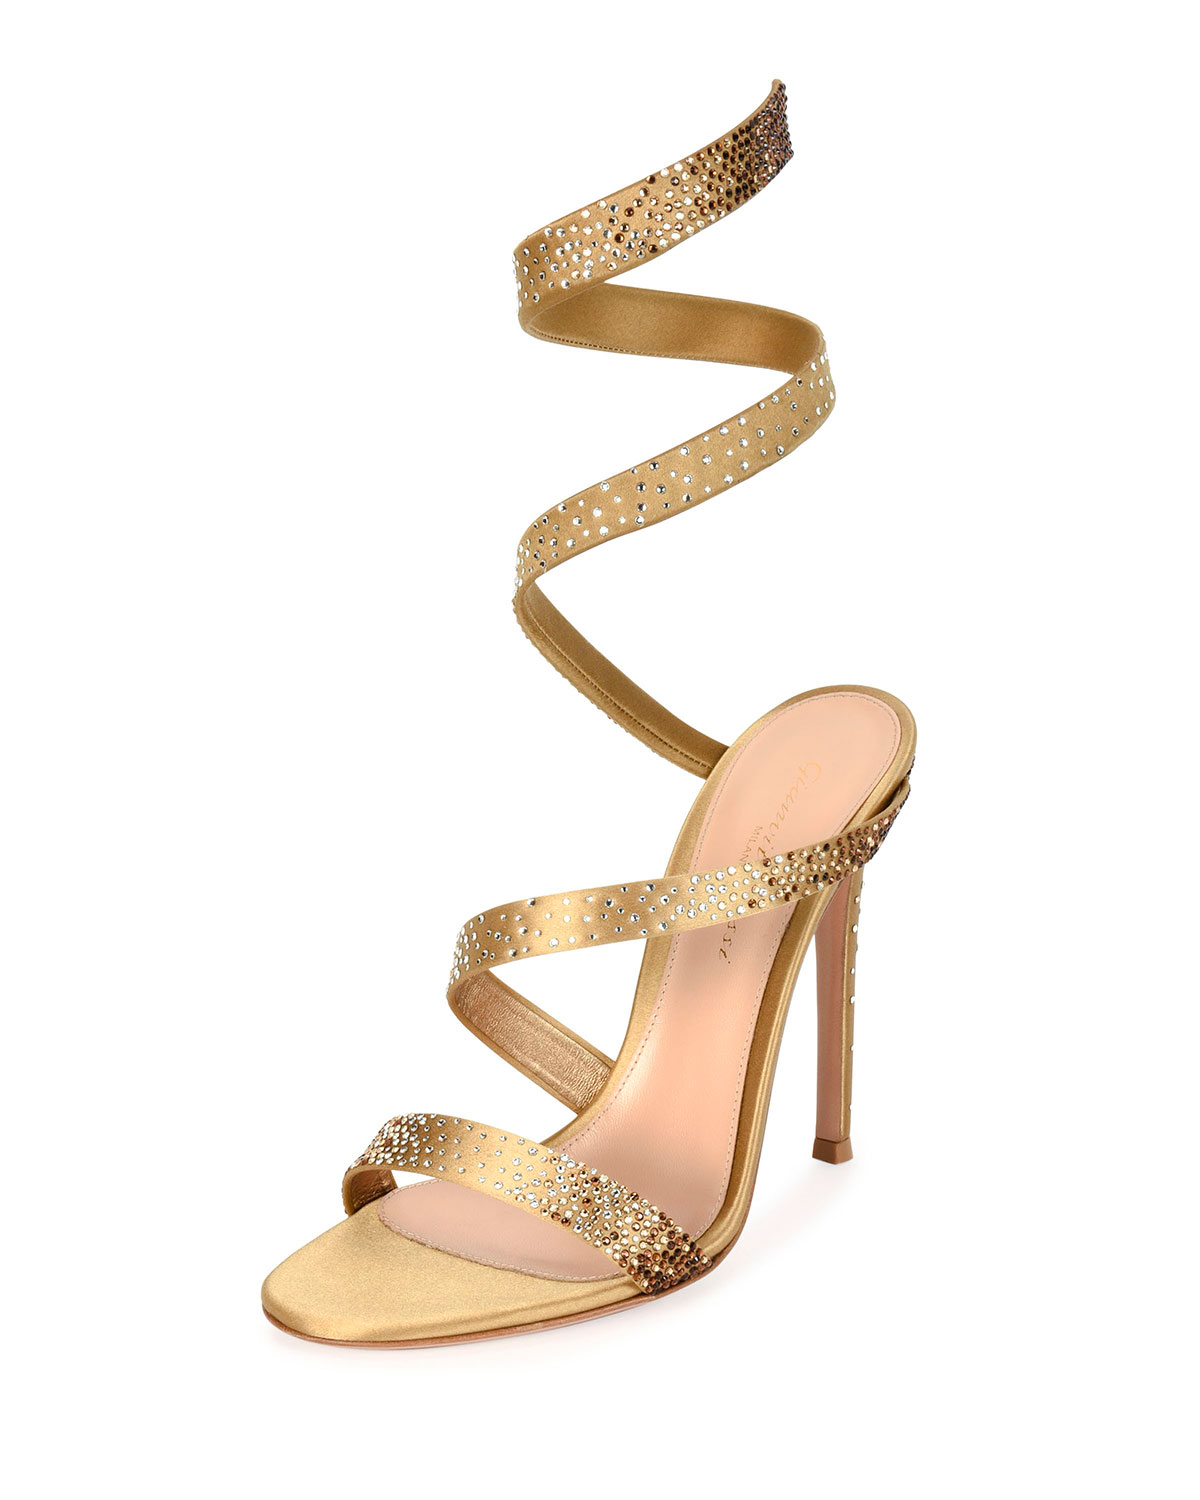 6f4ae9df5ee Gianvito Rossi Opera Ankle-Wrap 105mm Sandals